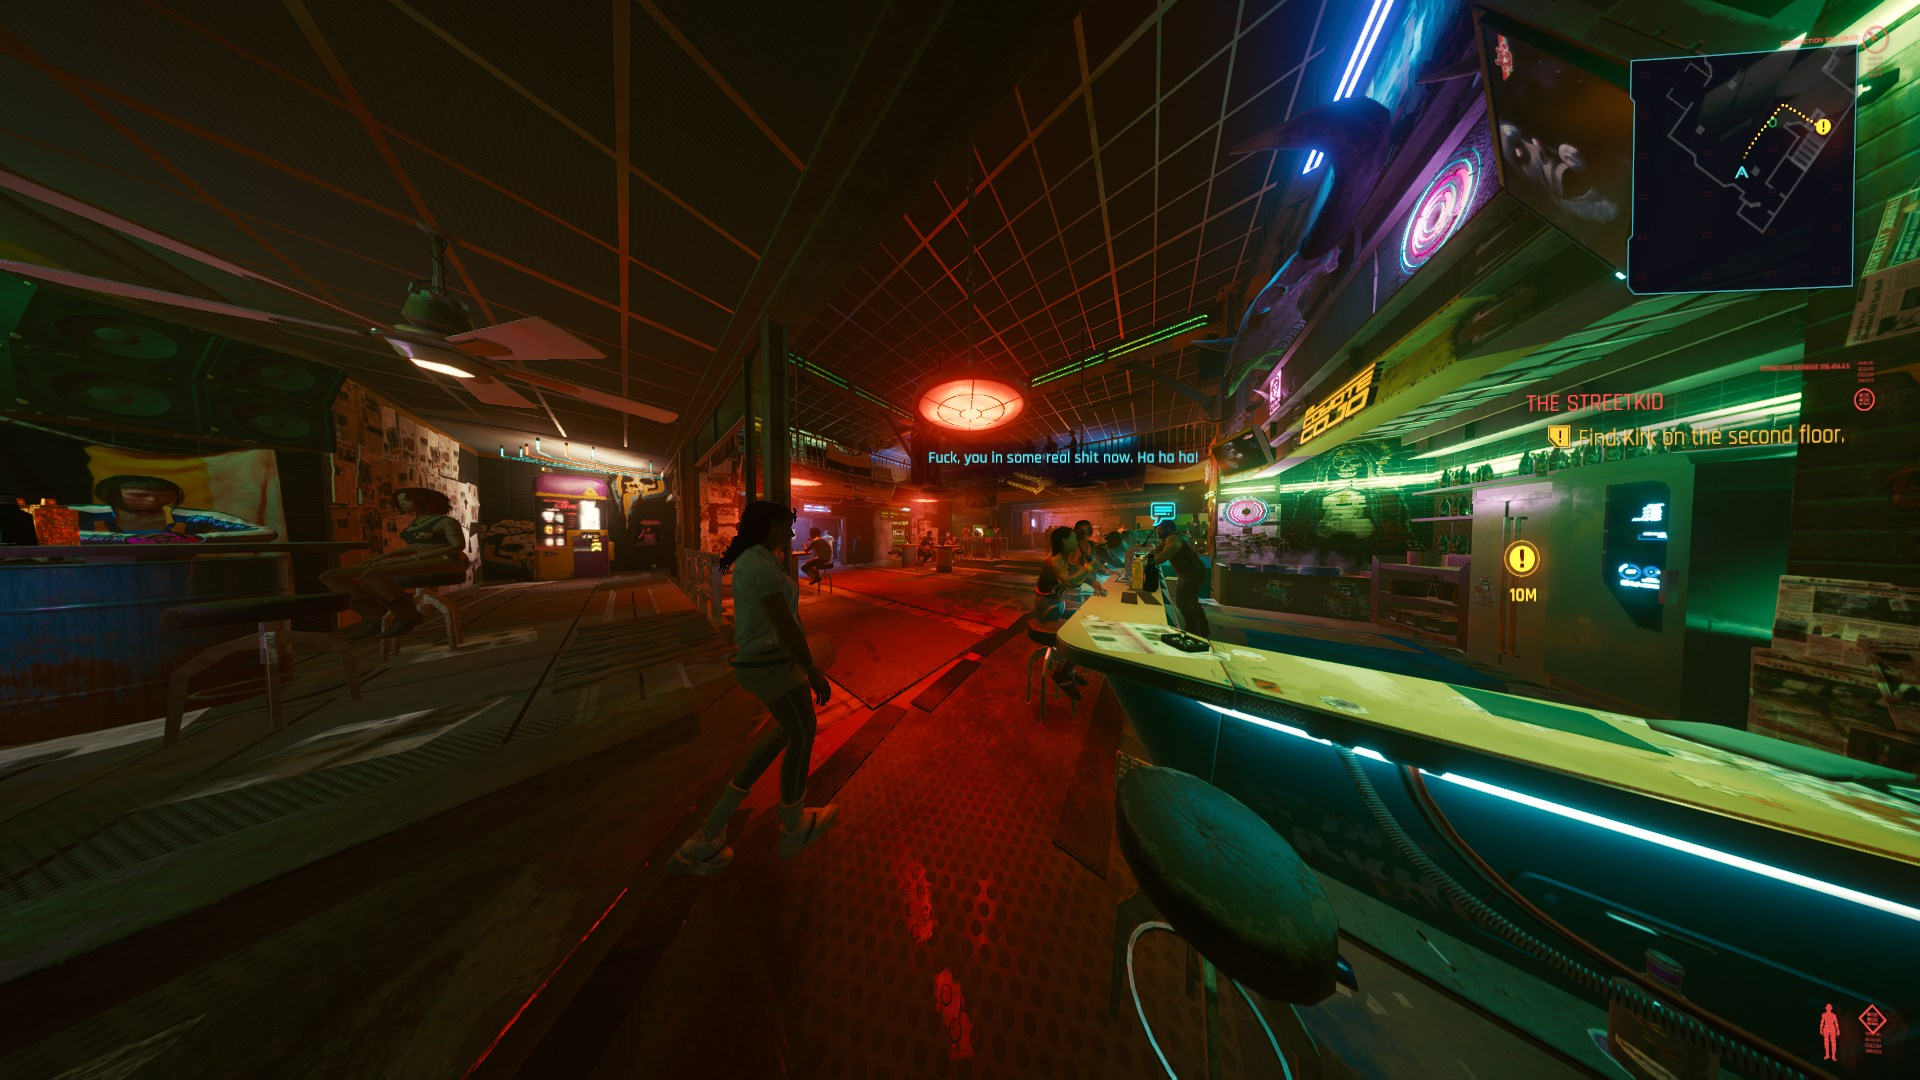 Увеличенный FOV для Cyberpunk 2077 -   Better Field Of View Slider